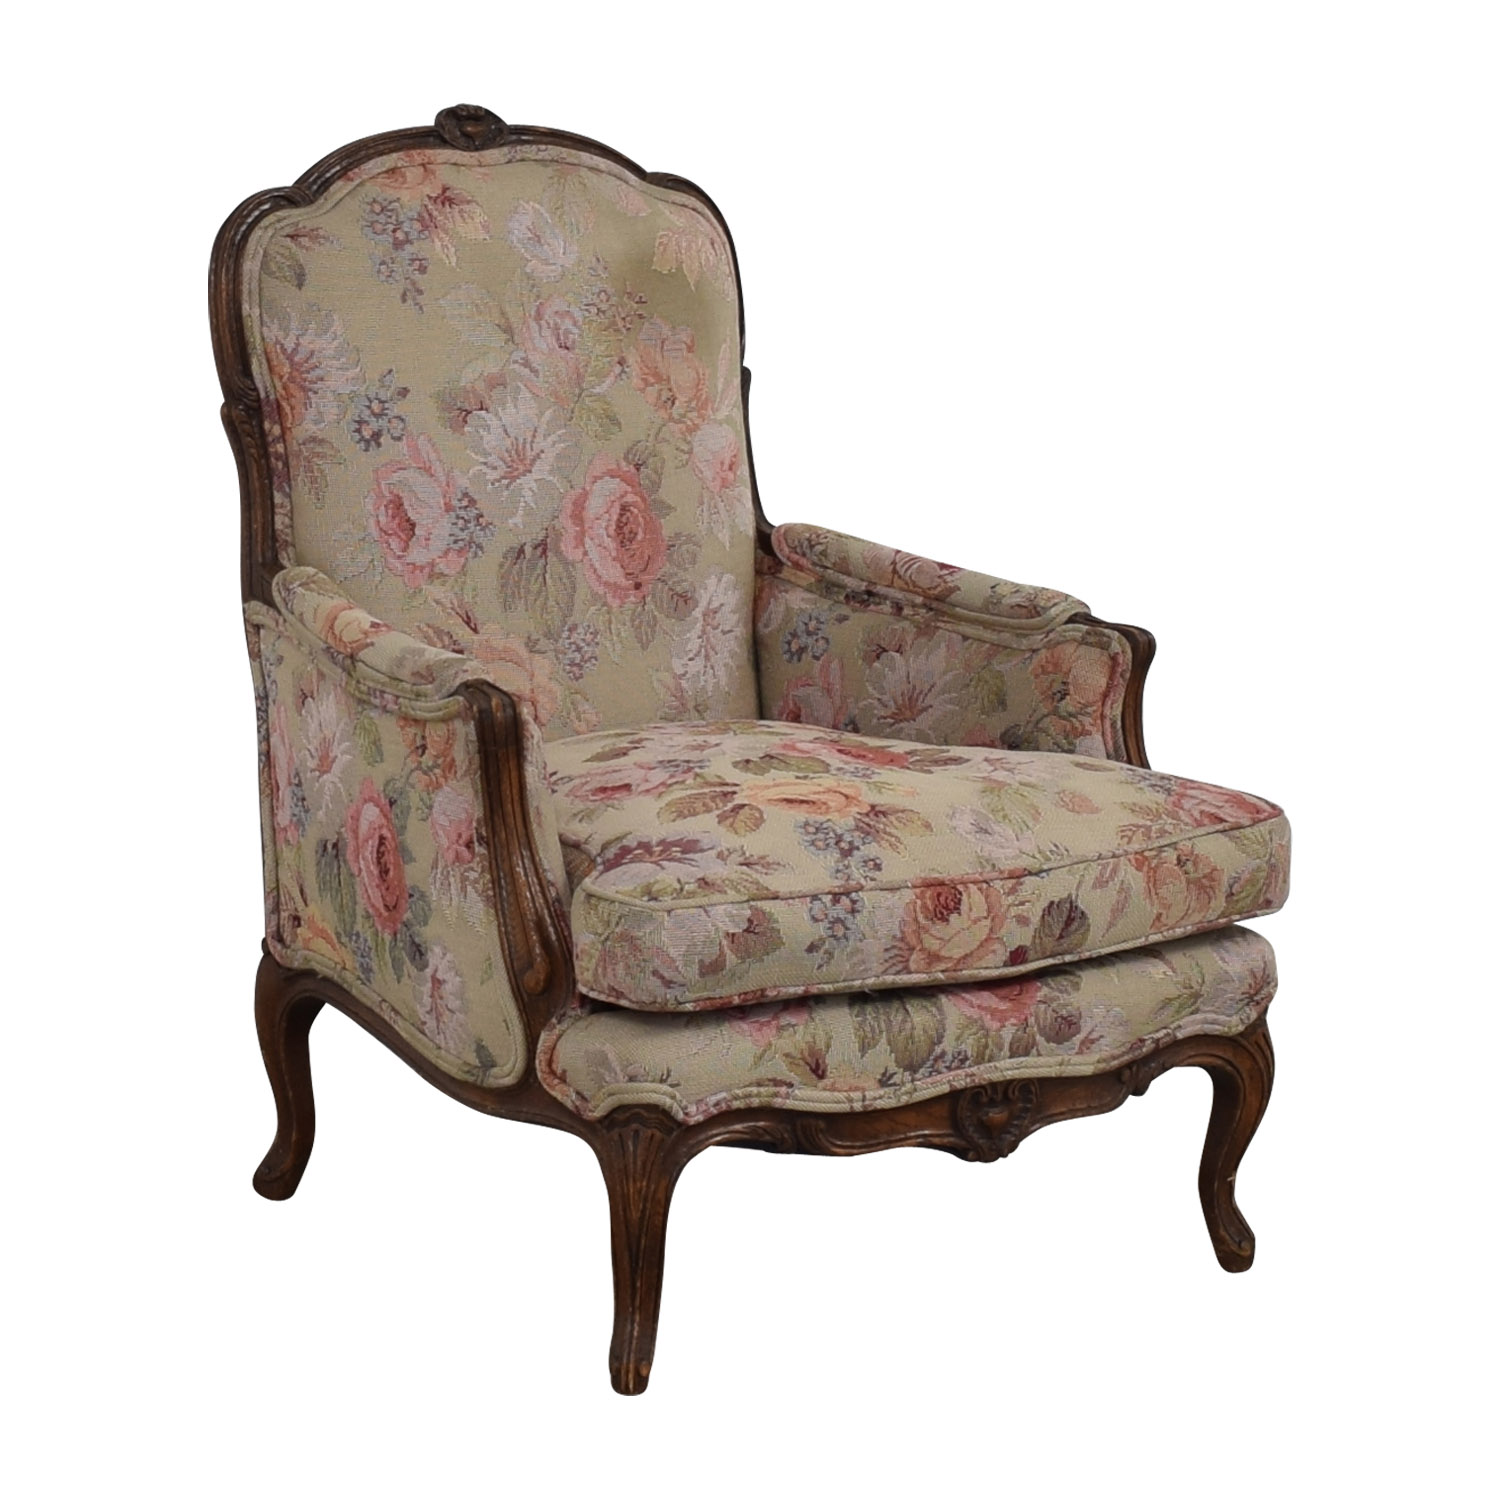 Floral Upholstered Arm Chair second hand